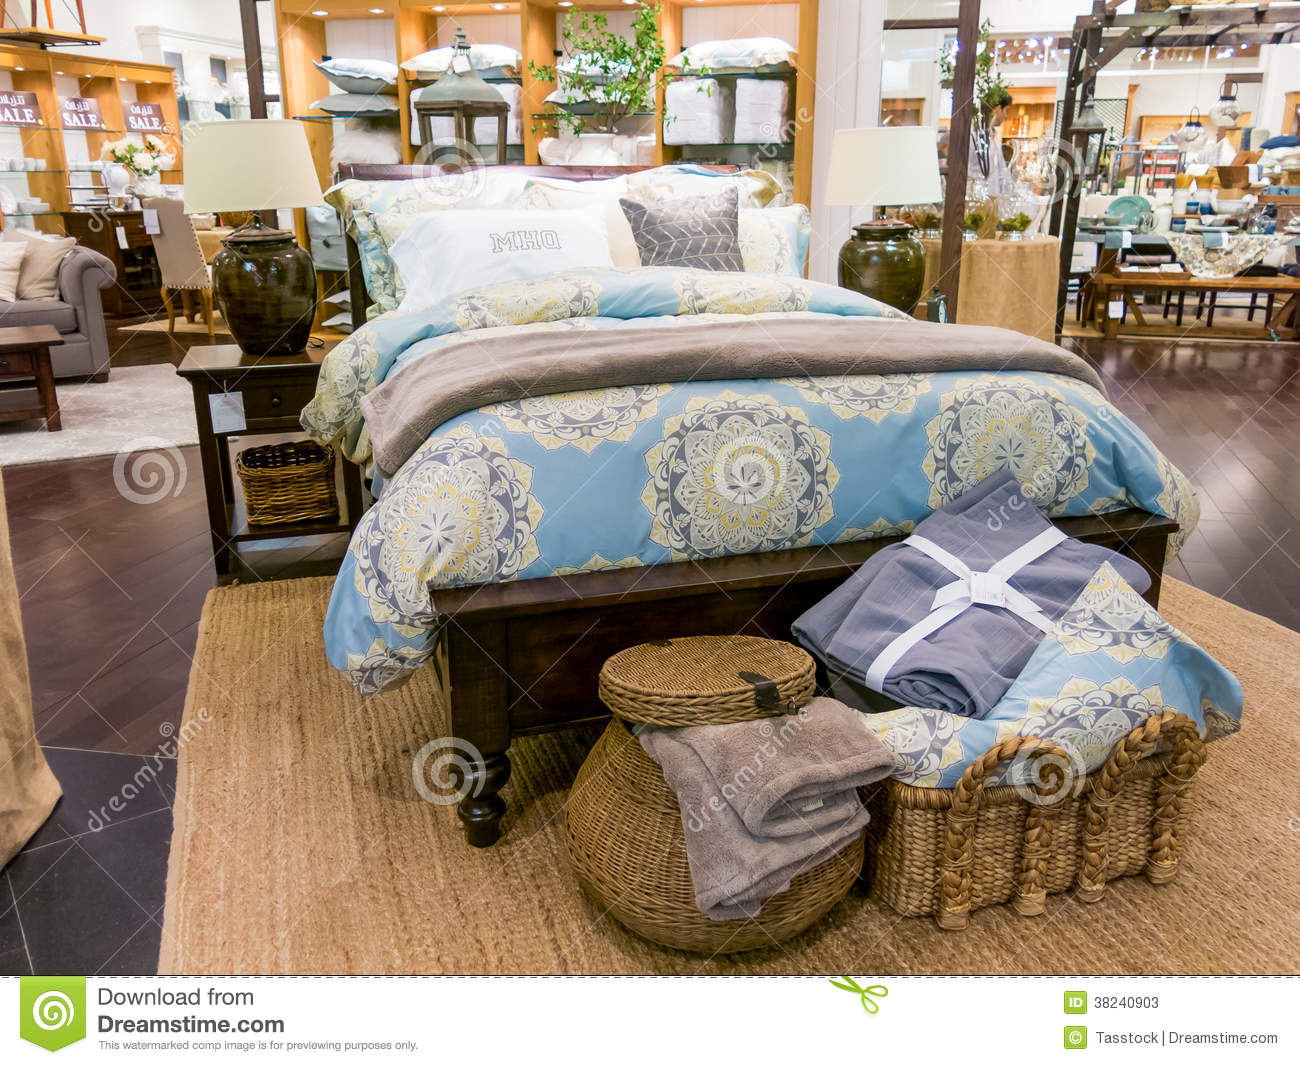 Home decor store in dubai mall editorial stock photo for Home interior decor stores